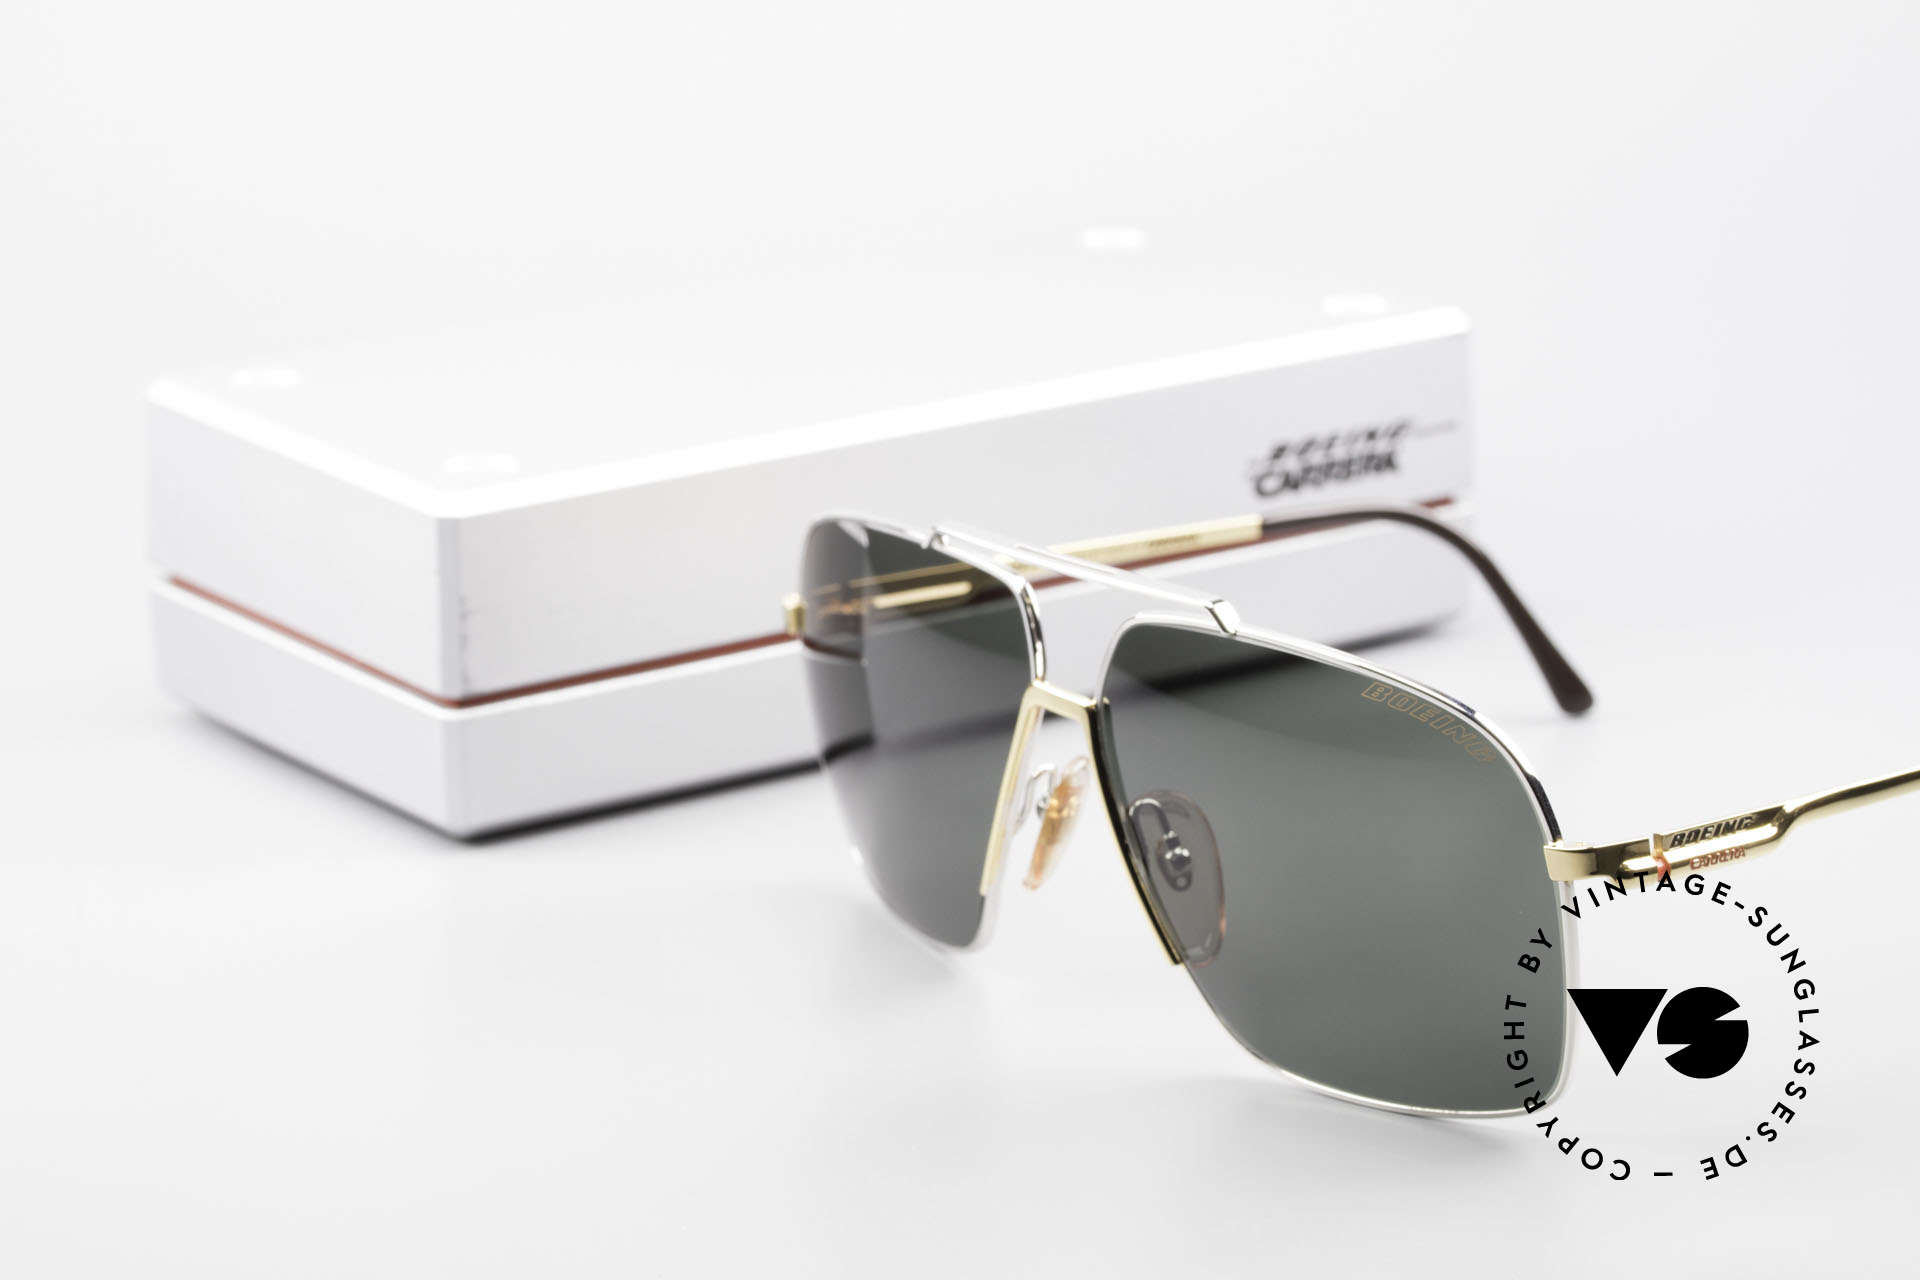 Boeing 5704 Original Old 80's Pilots Shades, Size: large, Made for Men